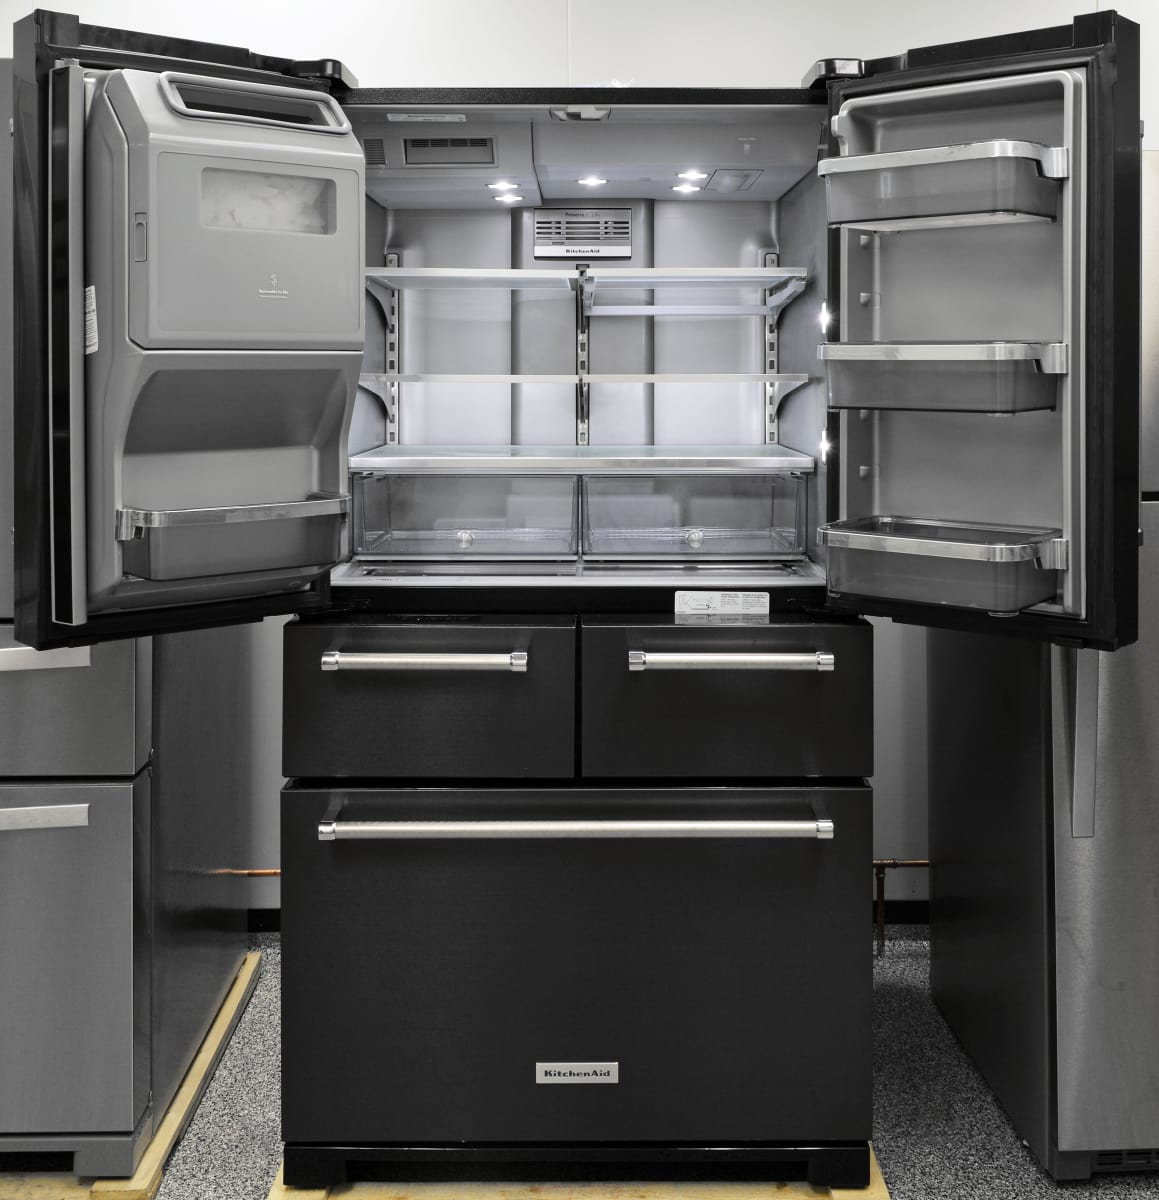 This Massive Five Door Fridge Is Both Roomy And Gorgeous A Real Statement Piece